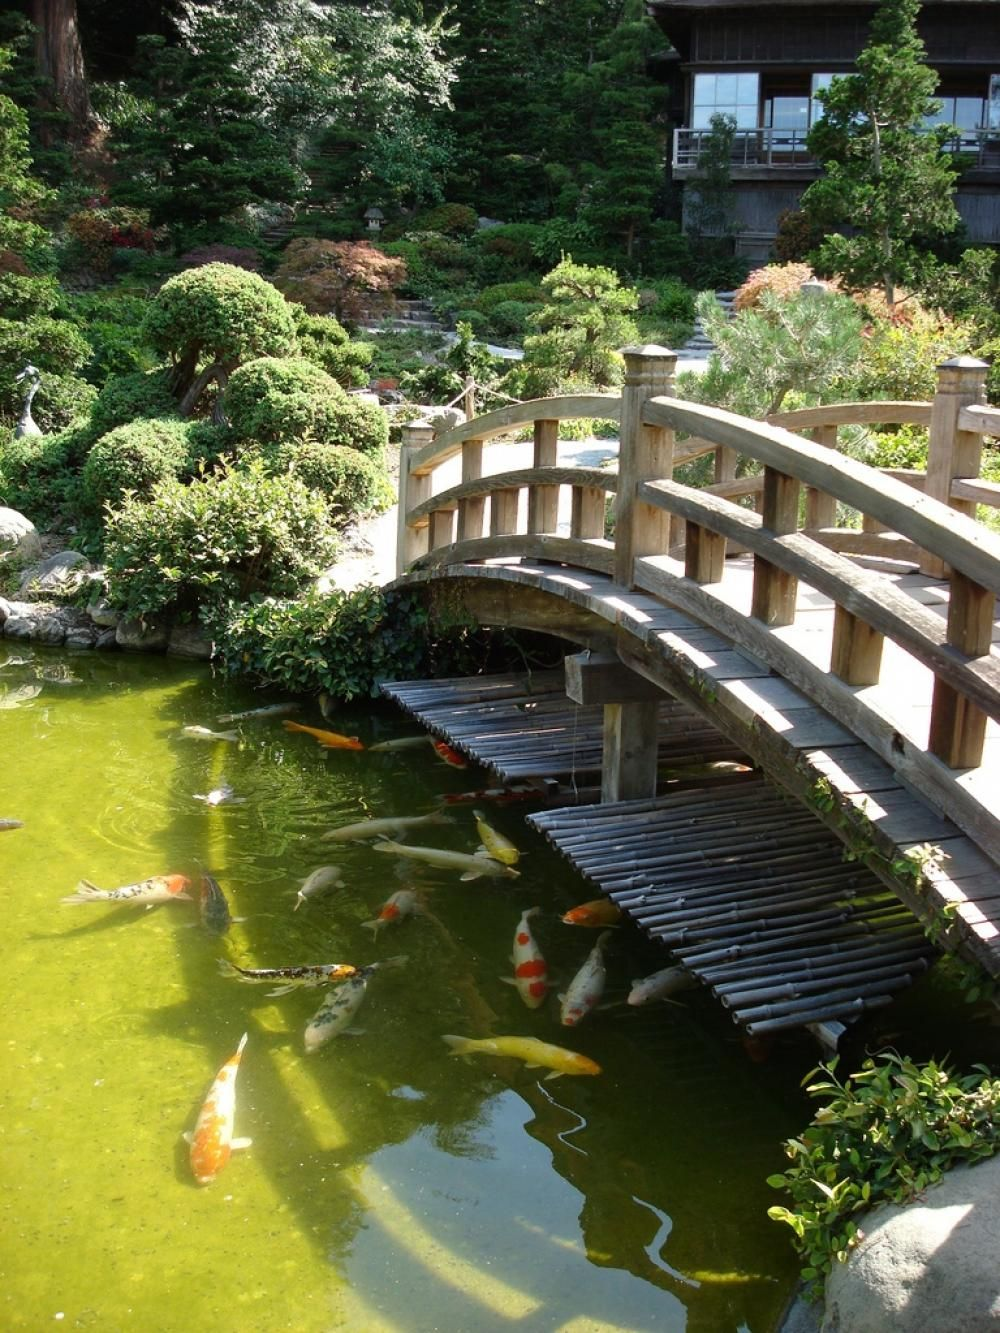 Gardening large koi pond with bridge in japanese garden for Japanese koi pond garden design